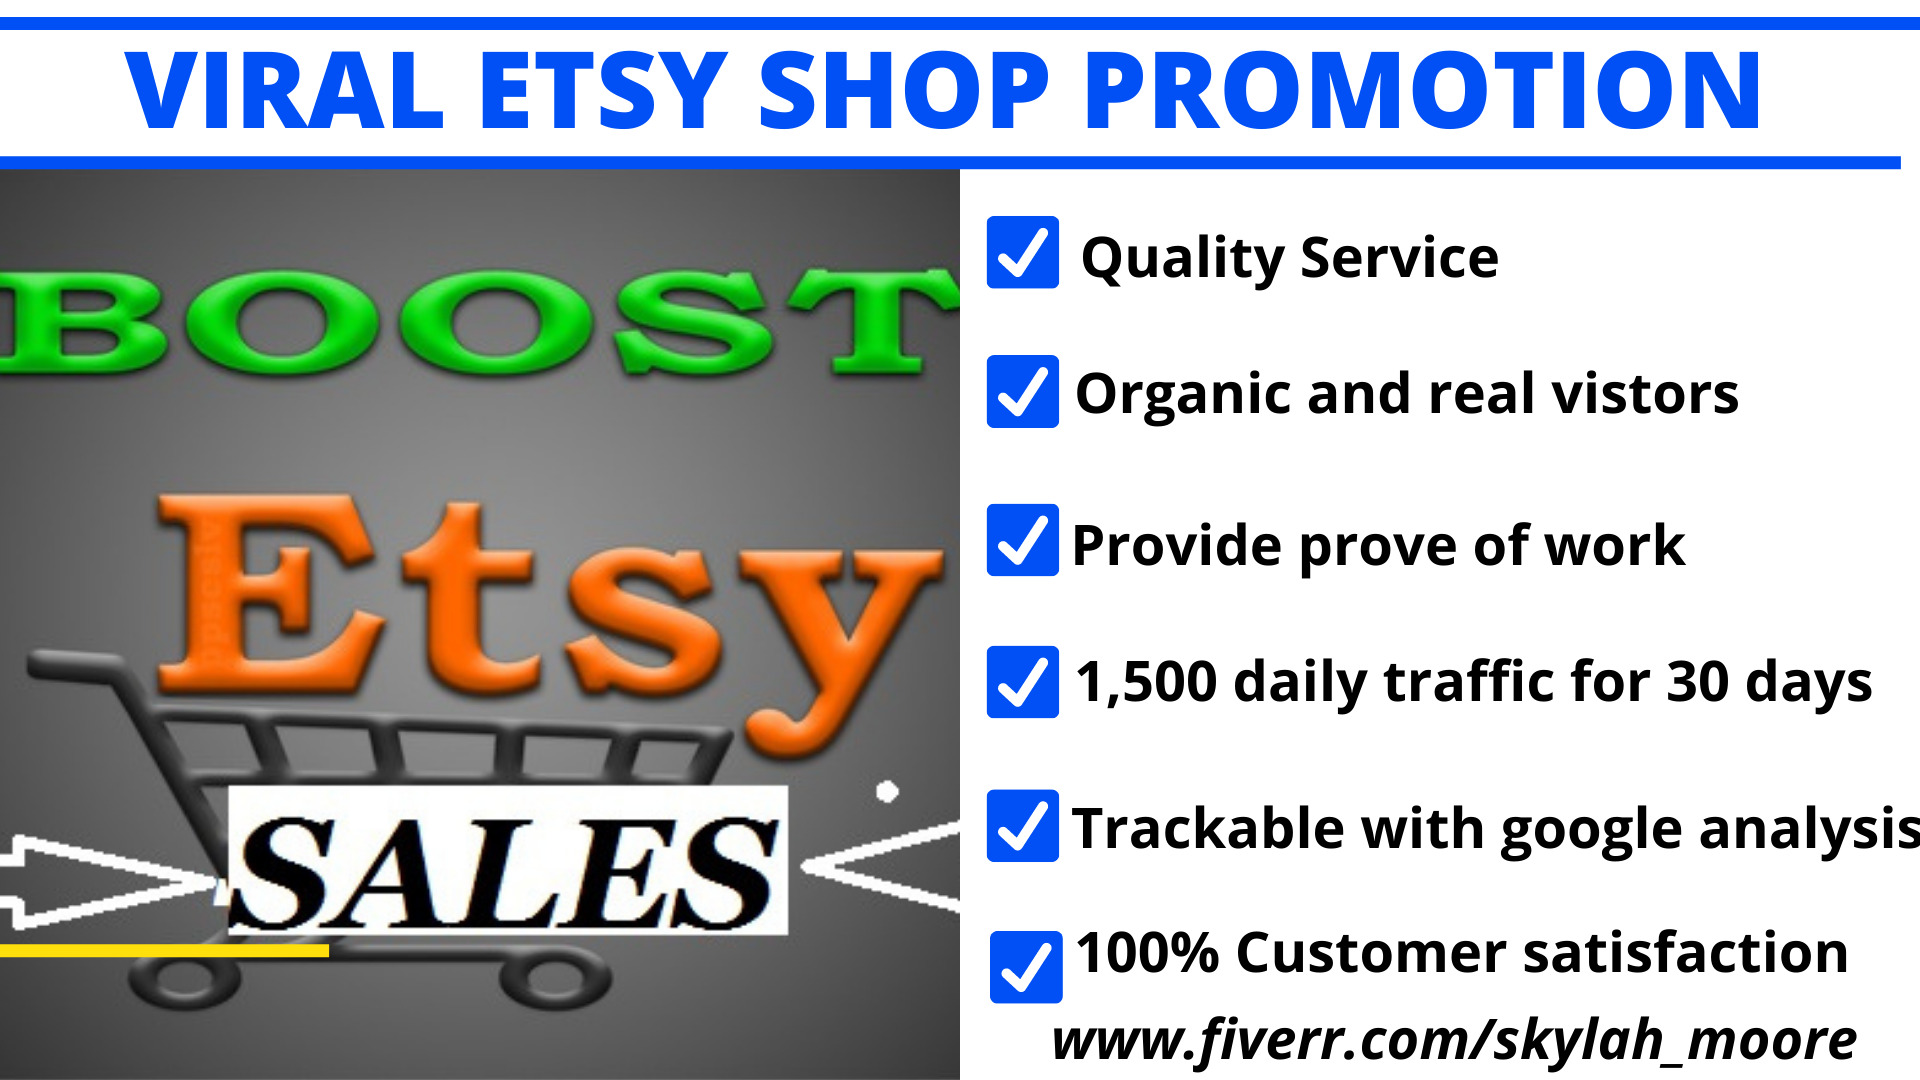 I will drive sales to etsy shop,etsy promotion,etsy traffic,etsy marketing to get, FiverrBox